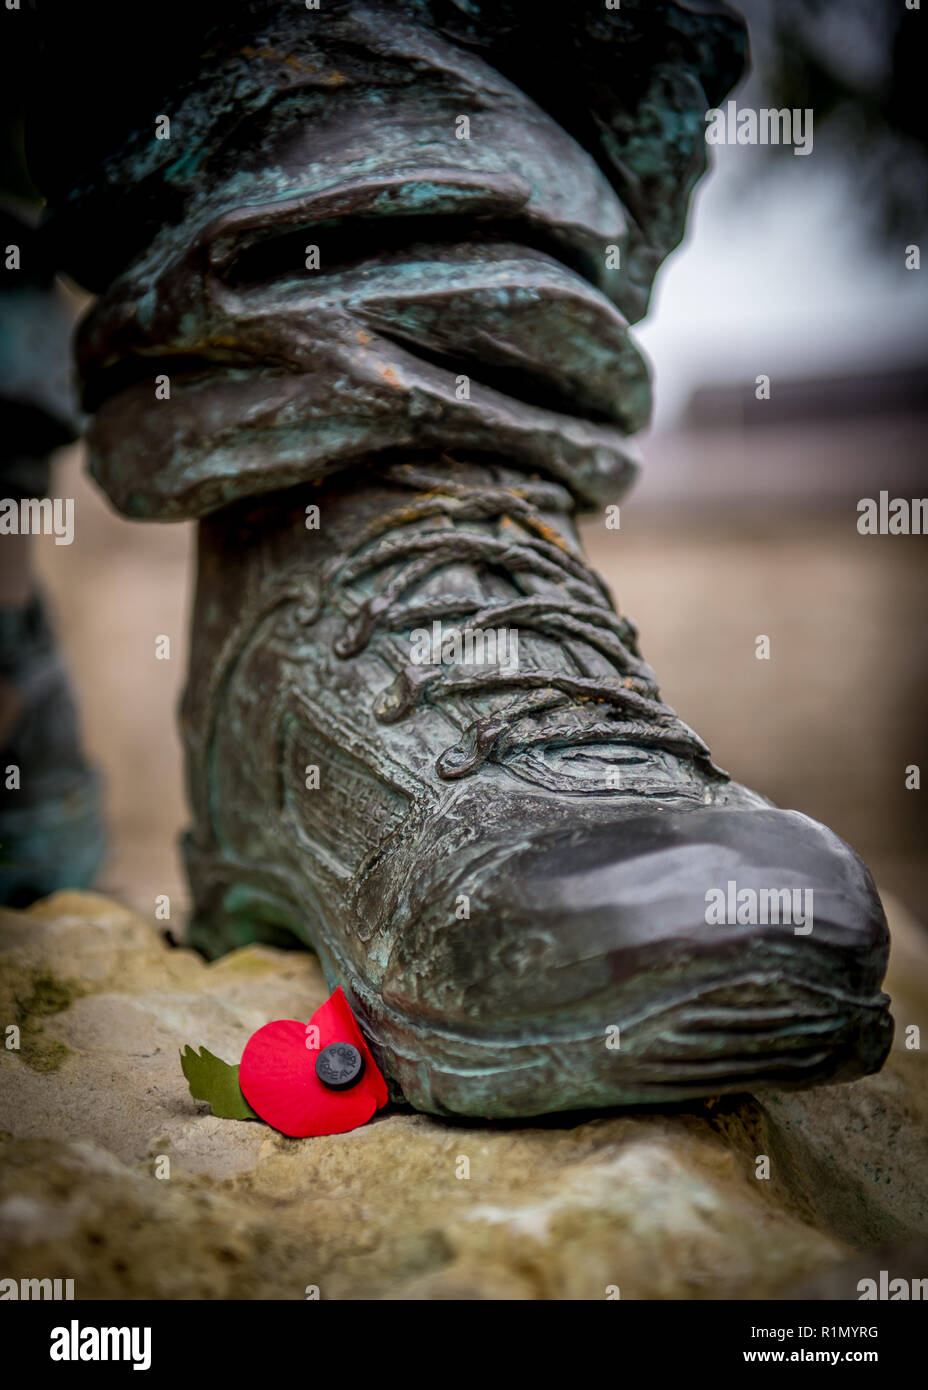 A Poppy left at solider statue memorial in Windsor to mark Armistice Day & Remembrance of the fallen soldiers in the World Wars - Stock Image